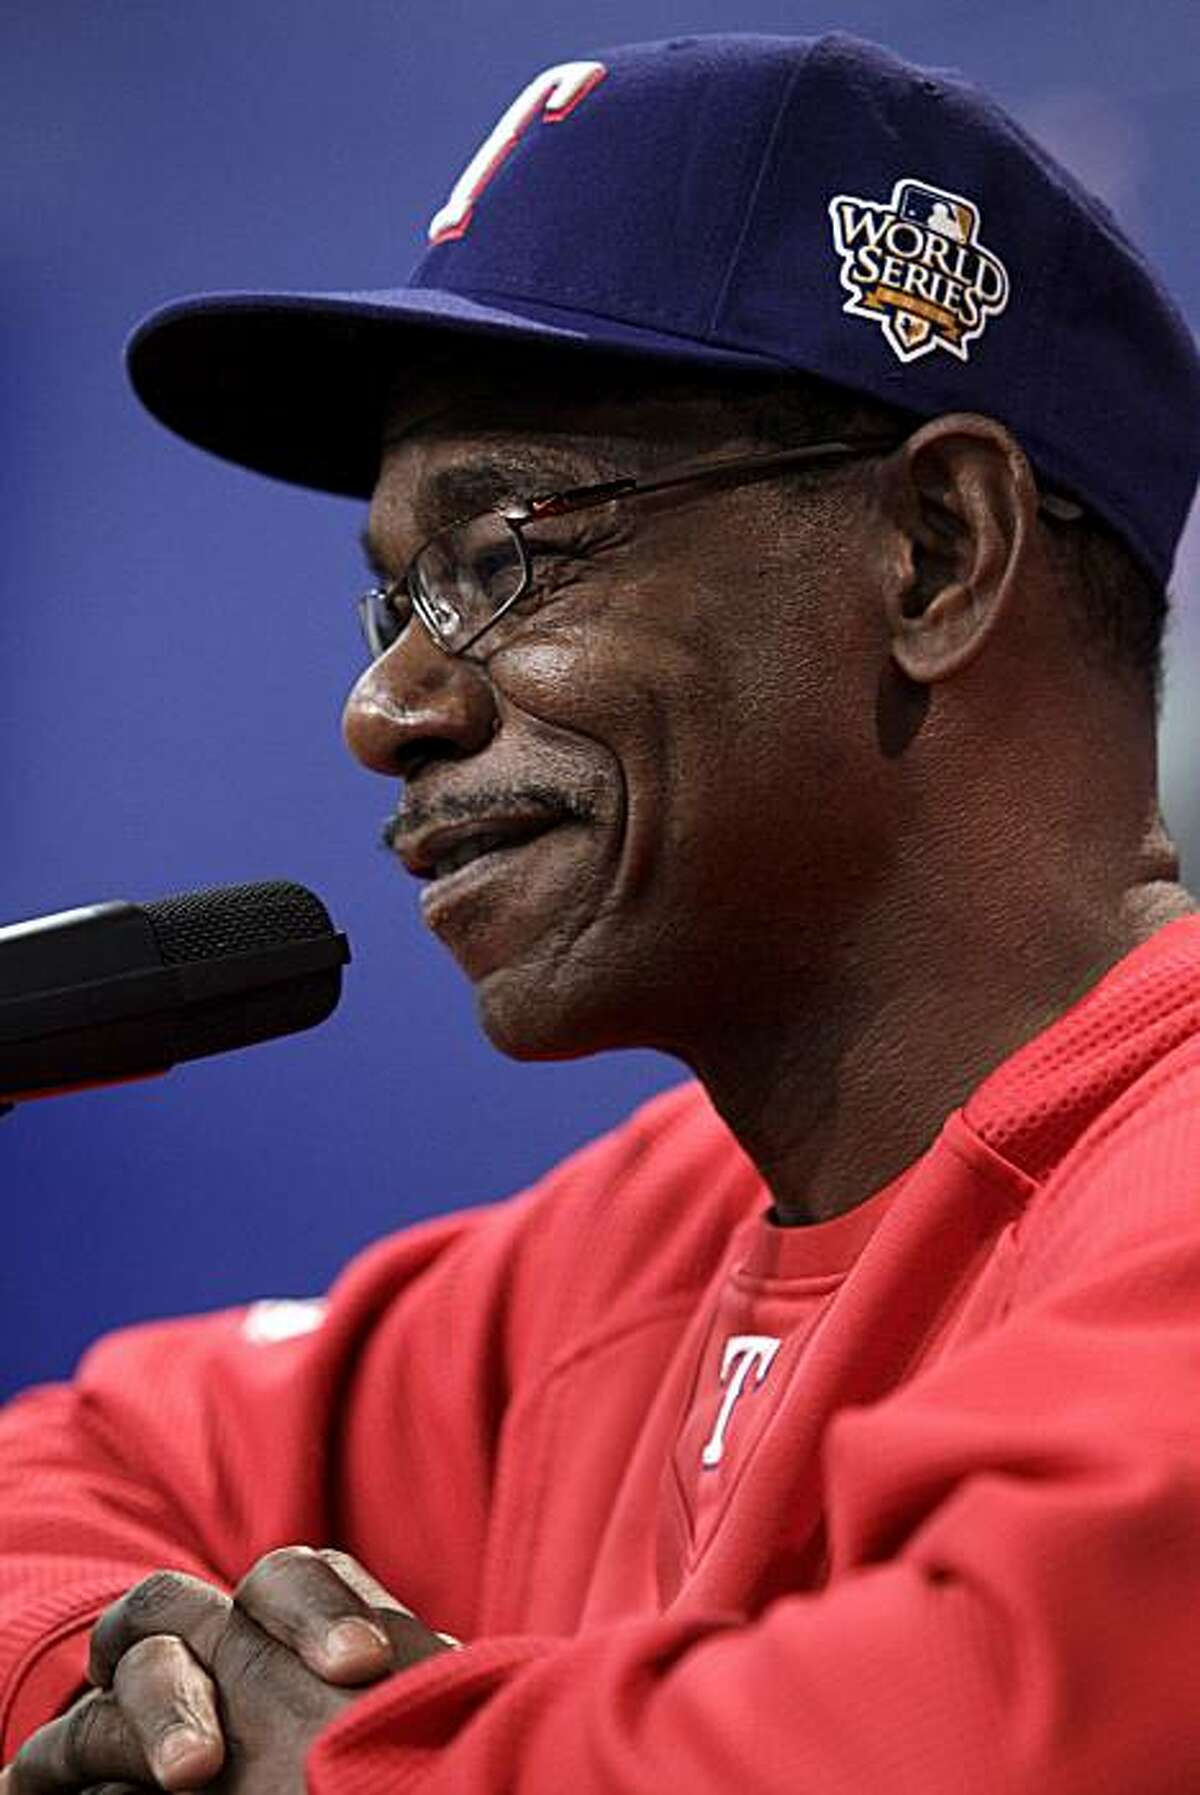 Texas Rangers manager Ron Washington responds to a question during a news conference before practice for baseball's World Series, Sunday, Oct. 24, 2010, in Arlington, Texas. The Rangers and the San Francisco Giants are scheduled to play Wednesday in the first game of the series.